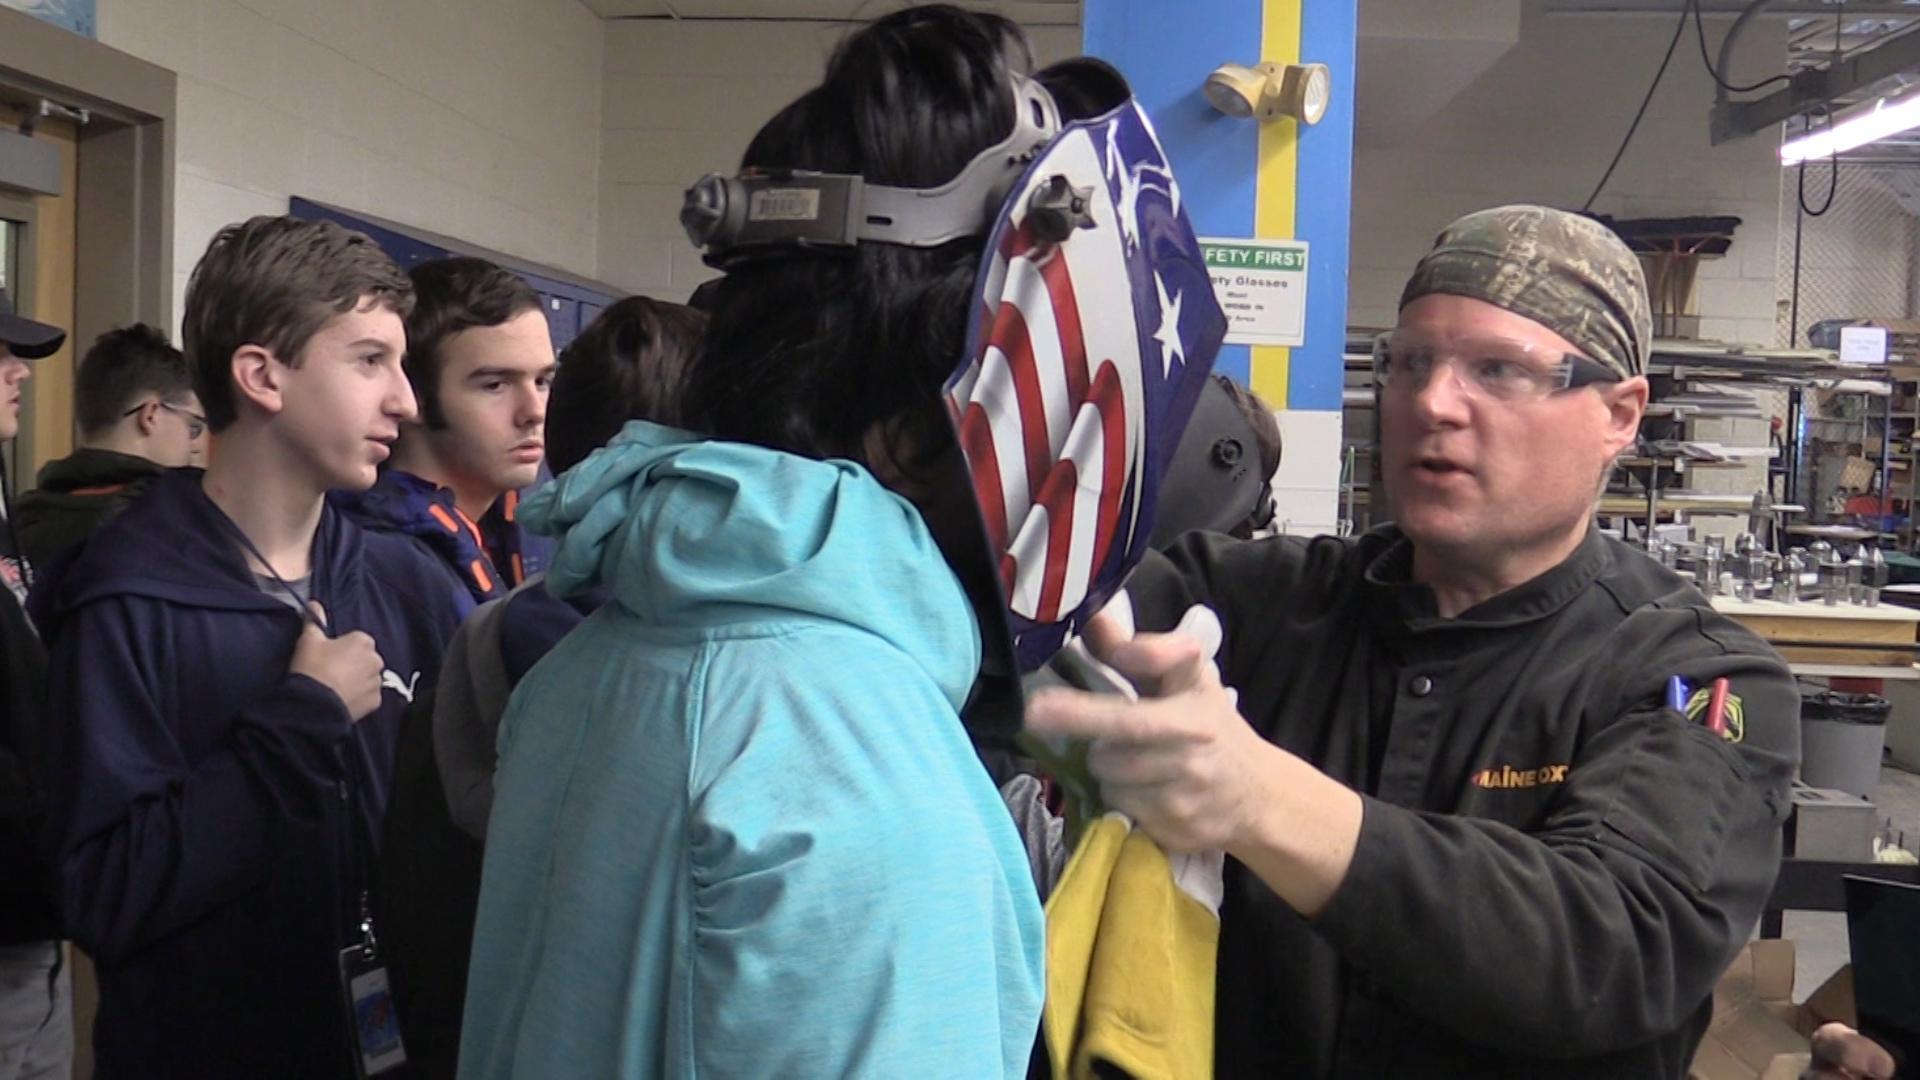 Mr. Burgher putting an American flag themed welding helmet on student